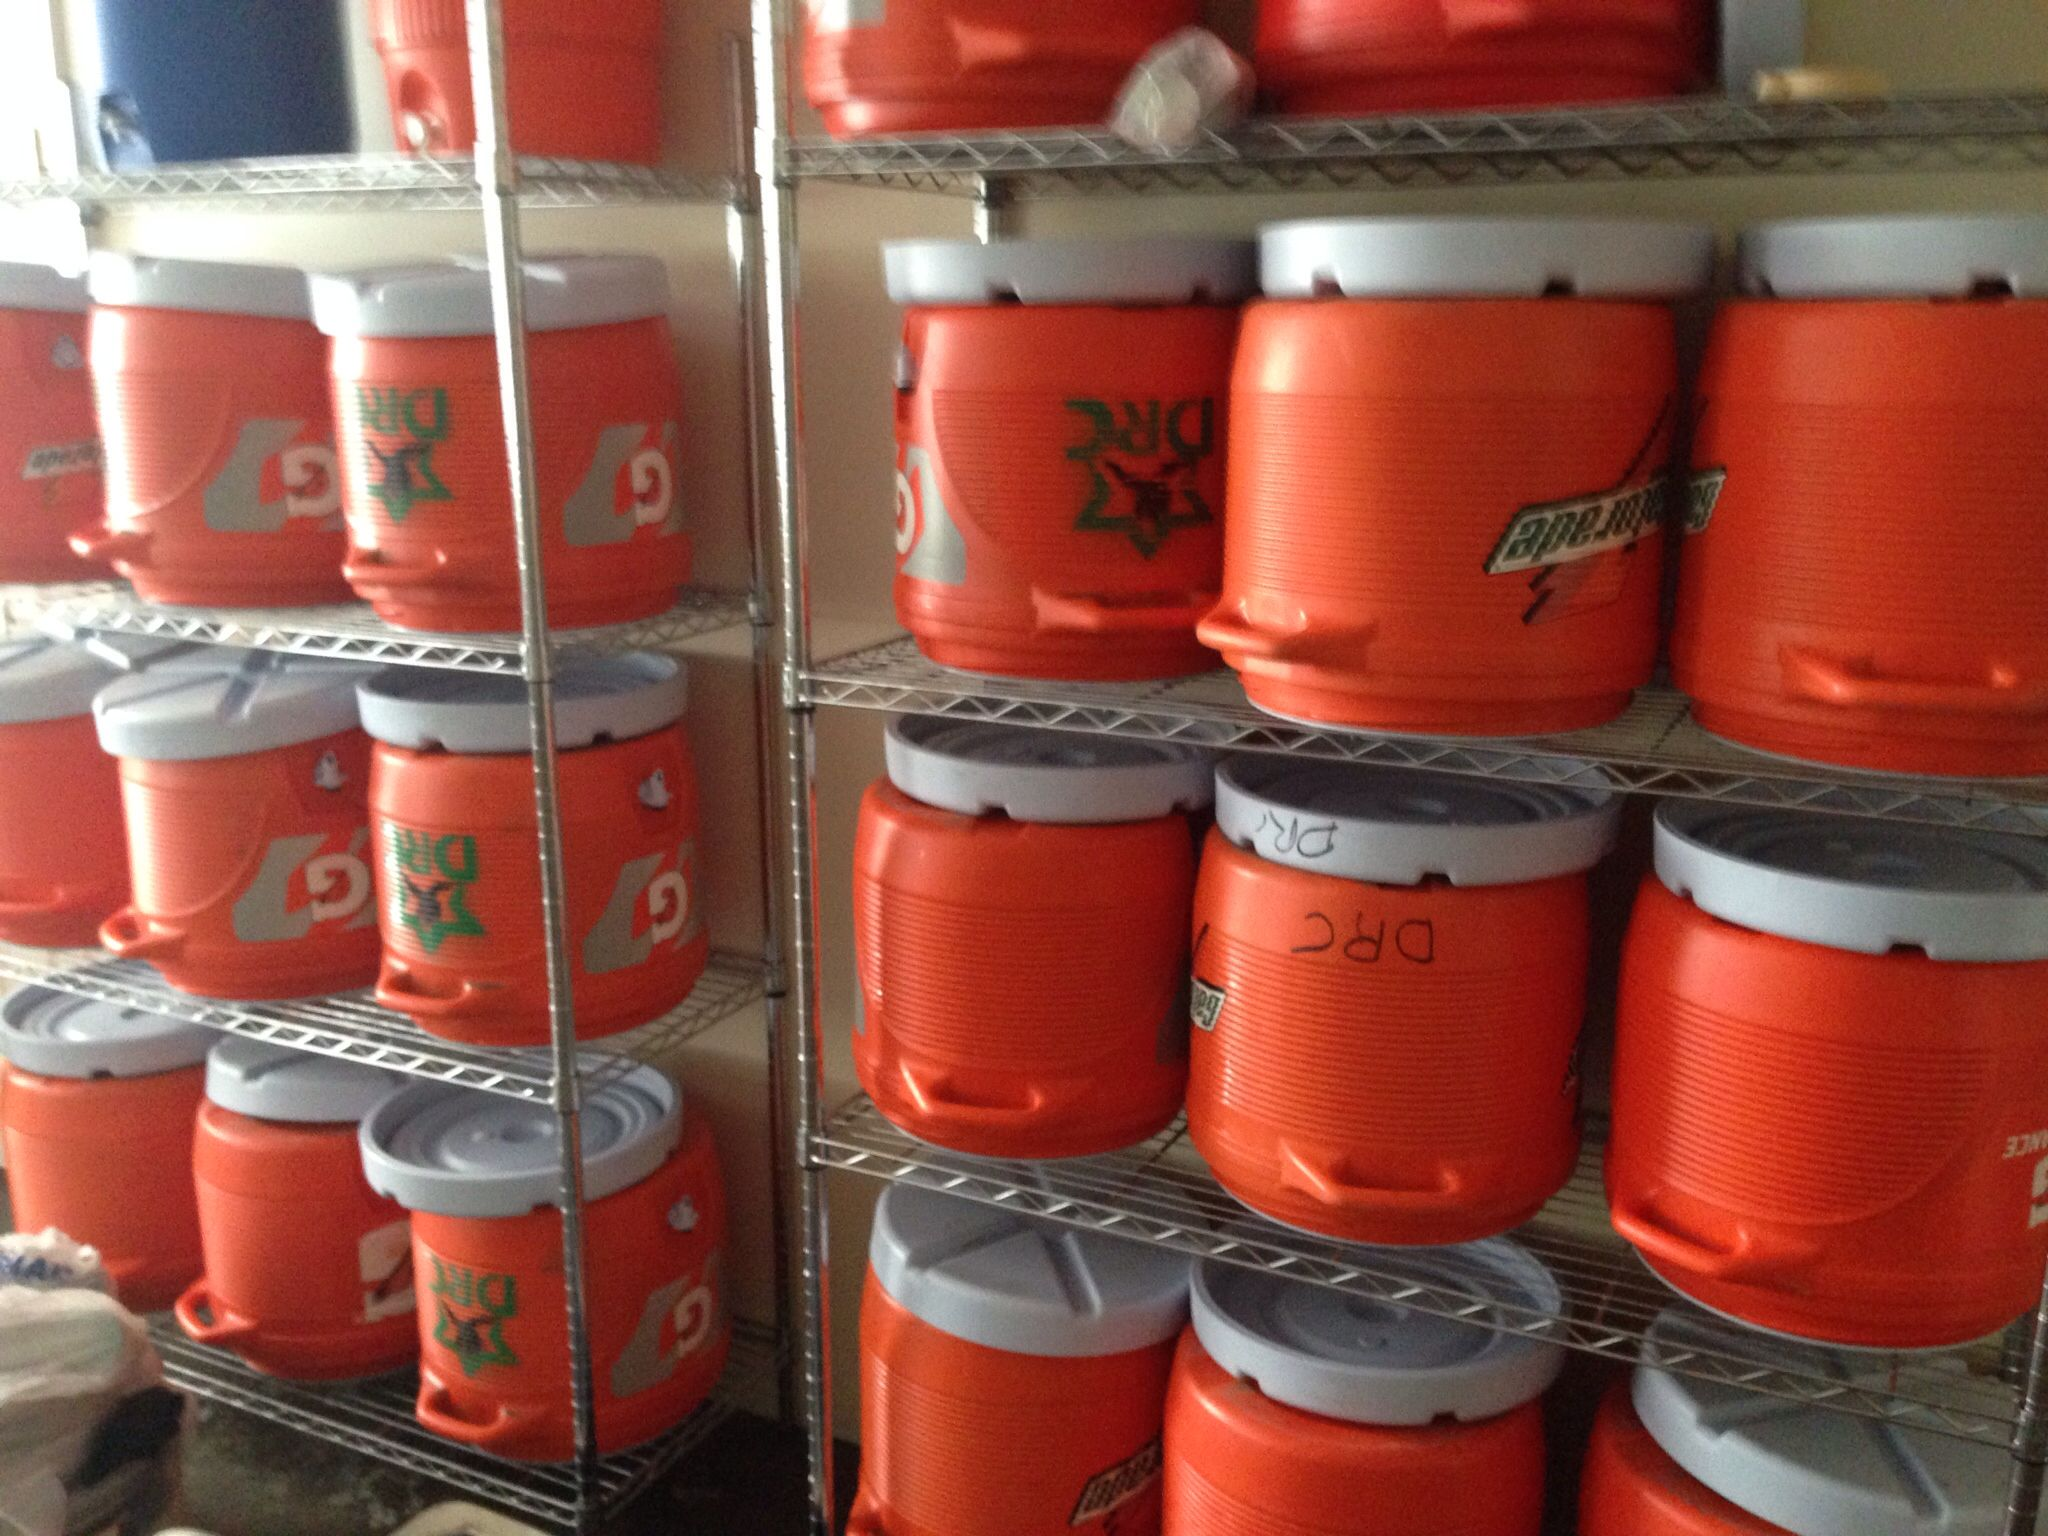 DRC water and electrolyte beverage coolers stored in our